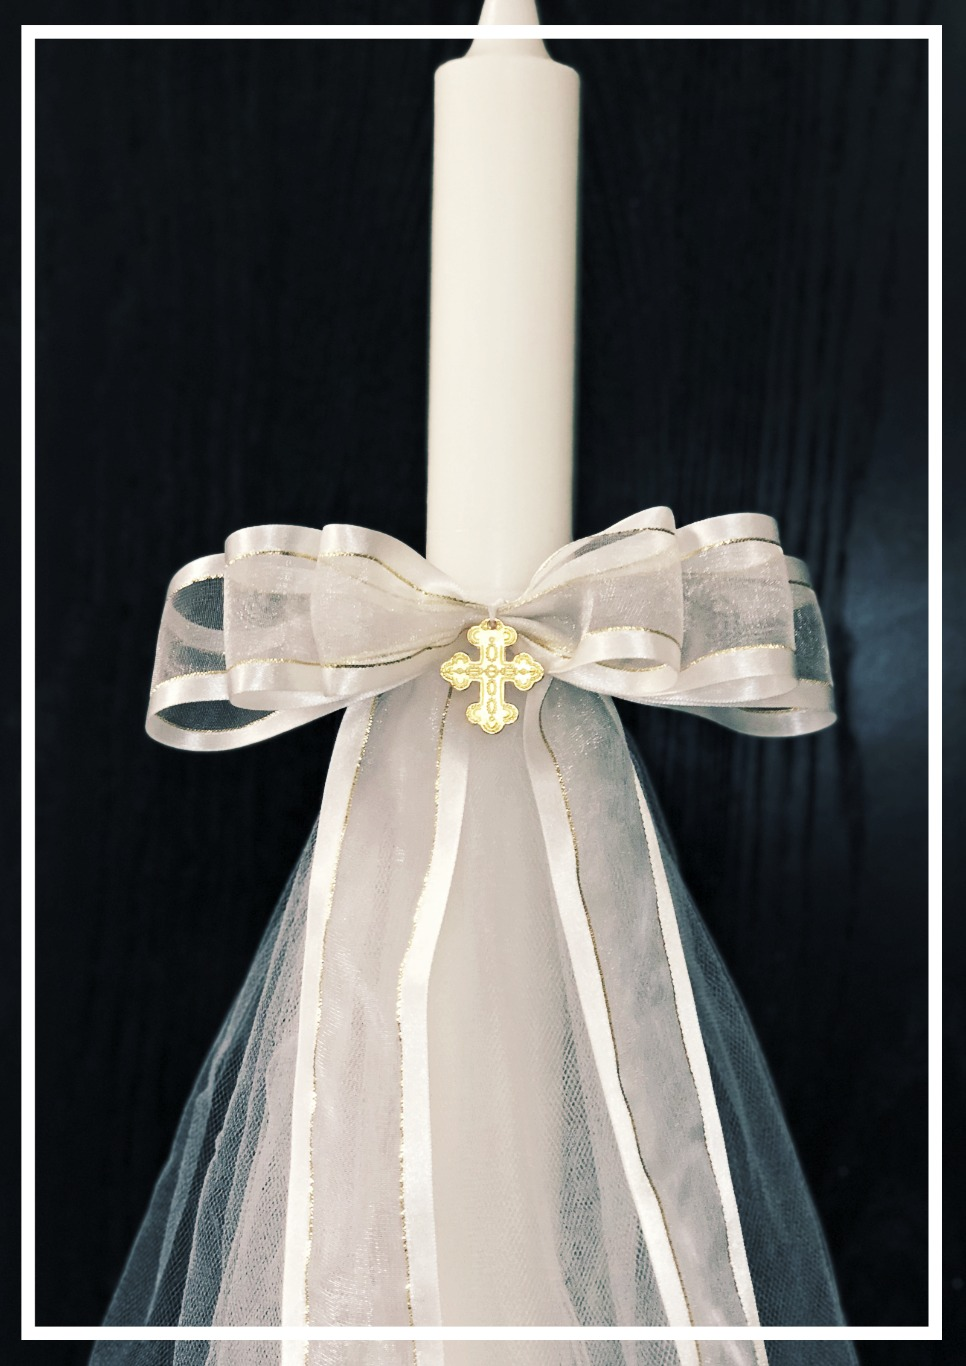 Orthodox Baptismal Candle (Lambatha)